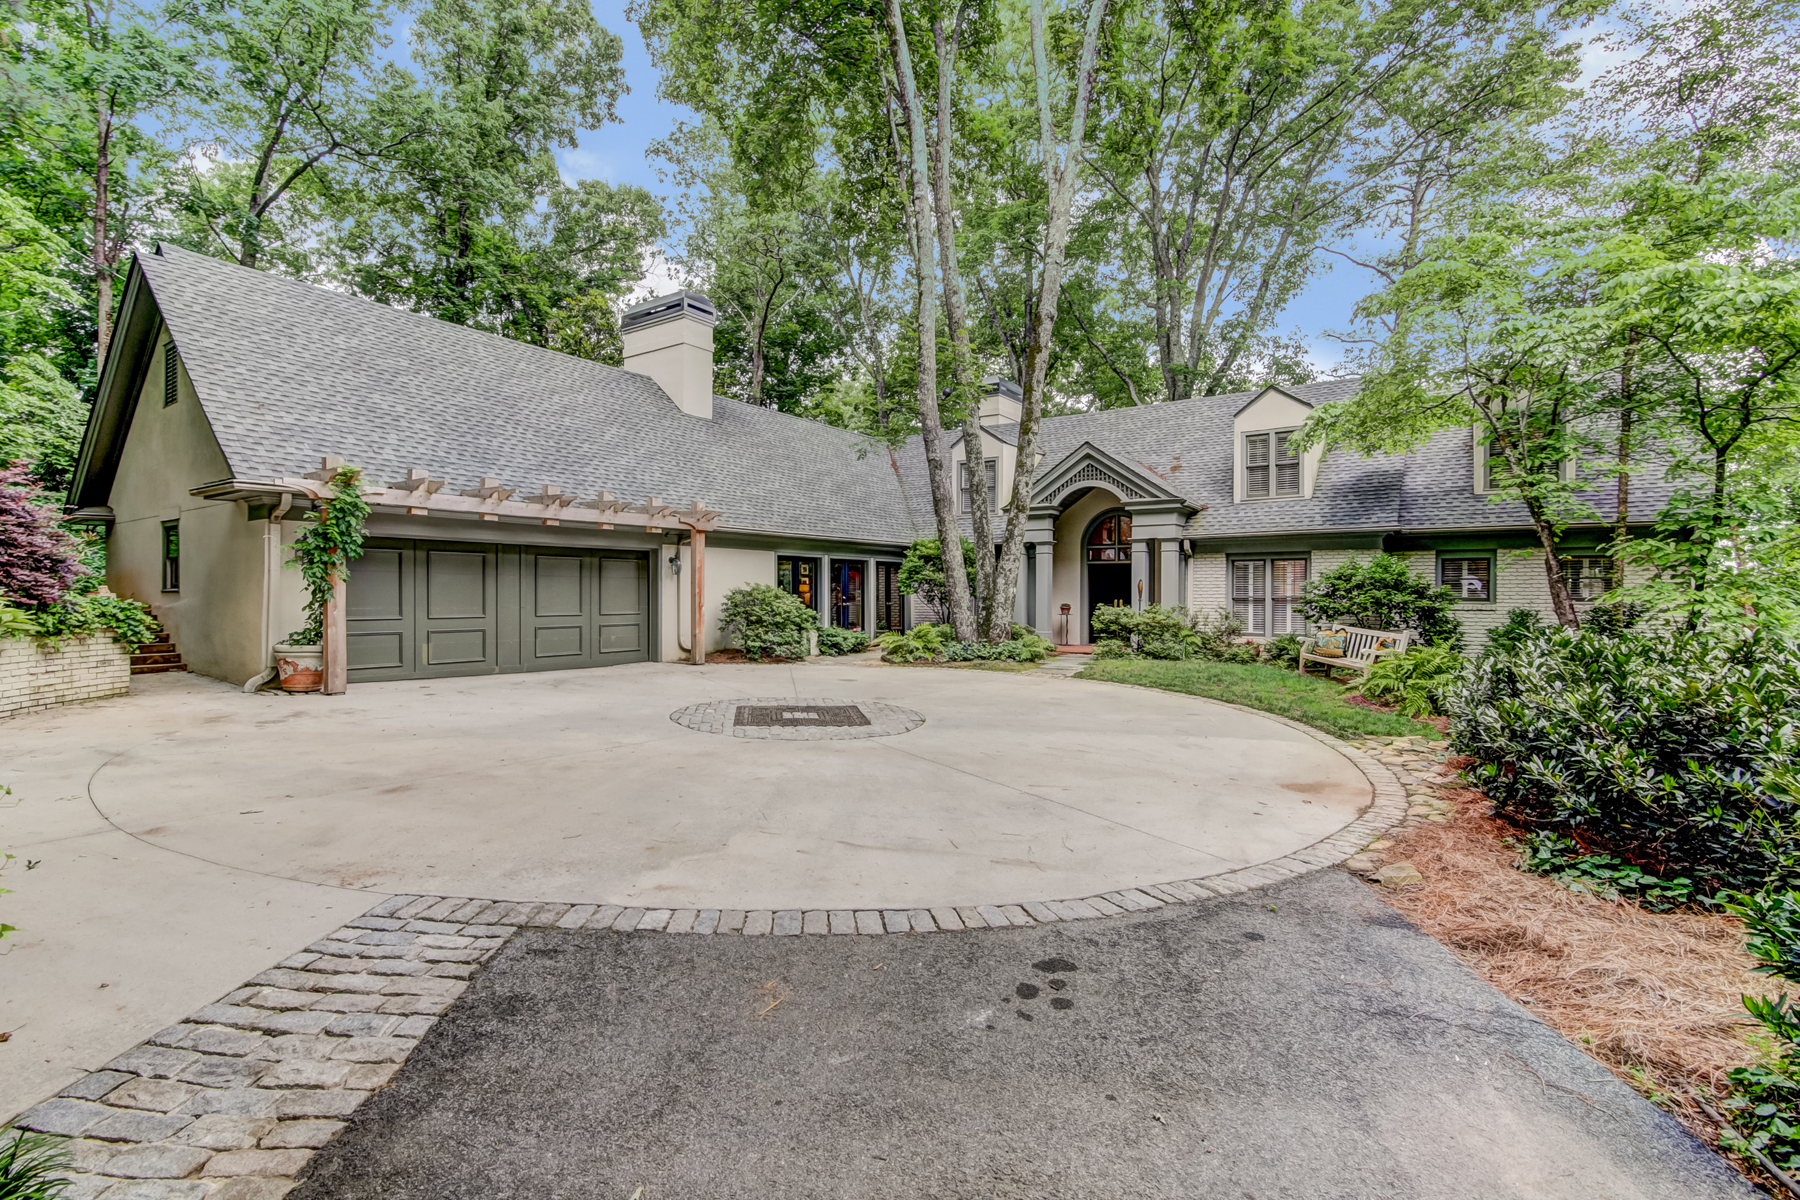 Single Family Homes for Sale at Secluded Home Overlooking the Chattahoochee River 4990 Riverview Road Sandy Springs, Georgia 30327 United States